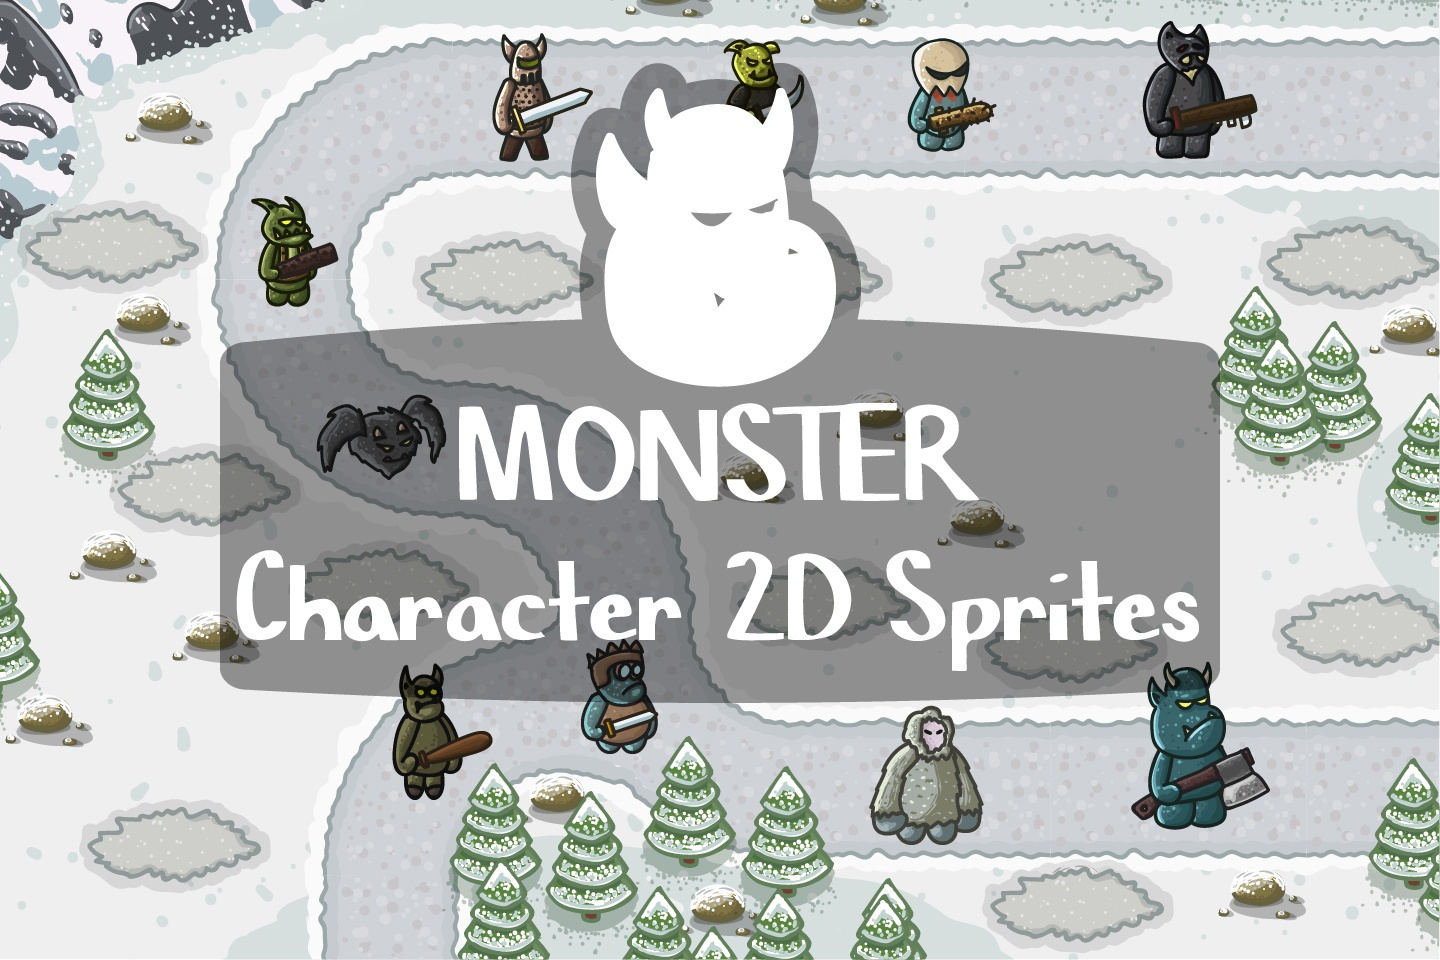 Monster Character 2D Sprites